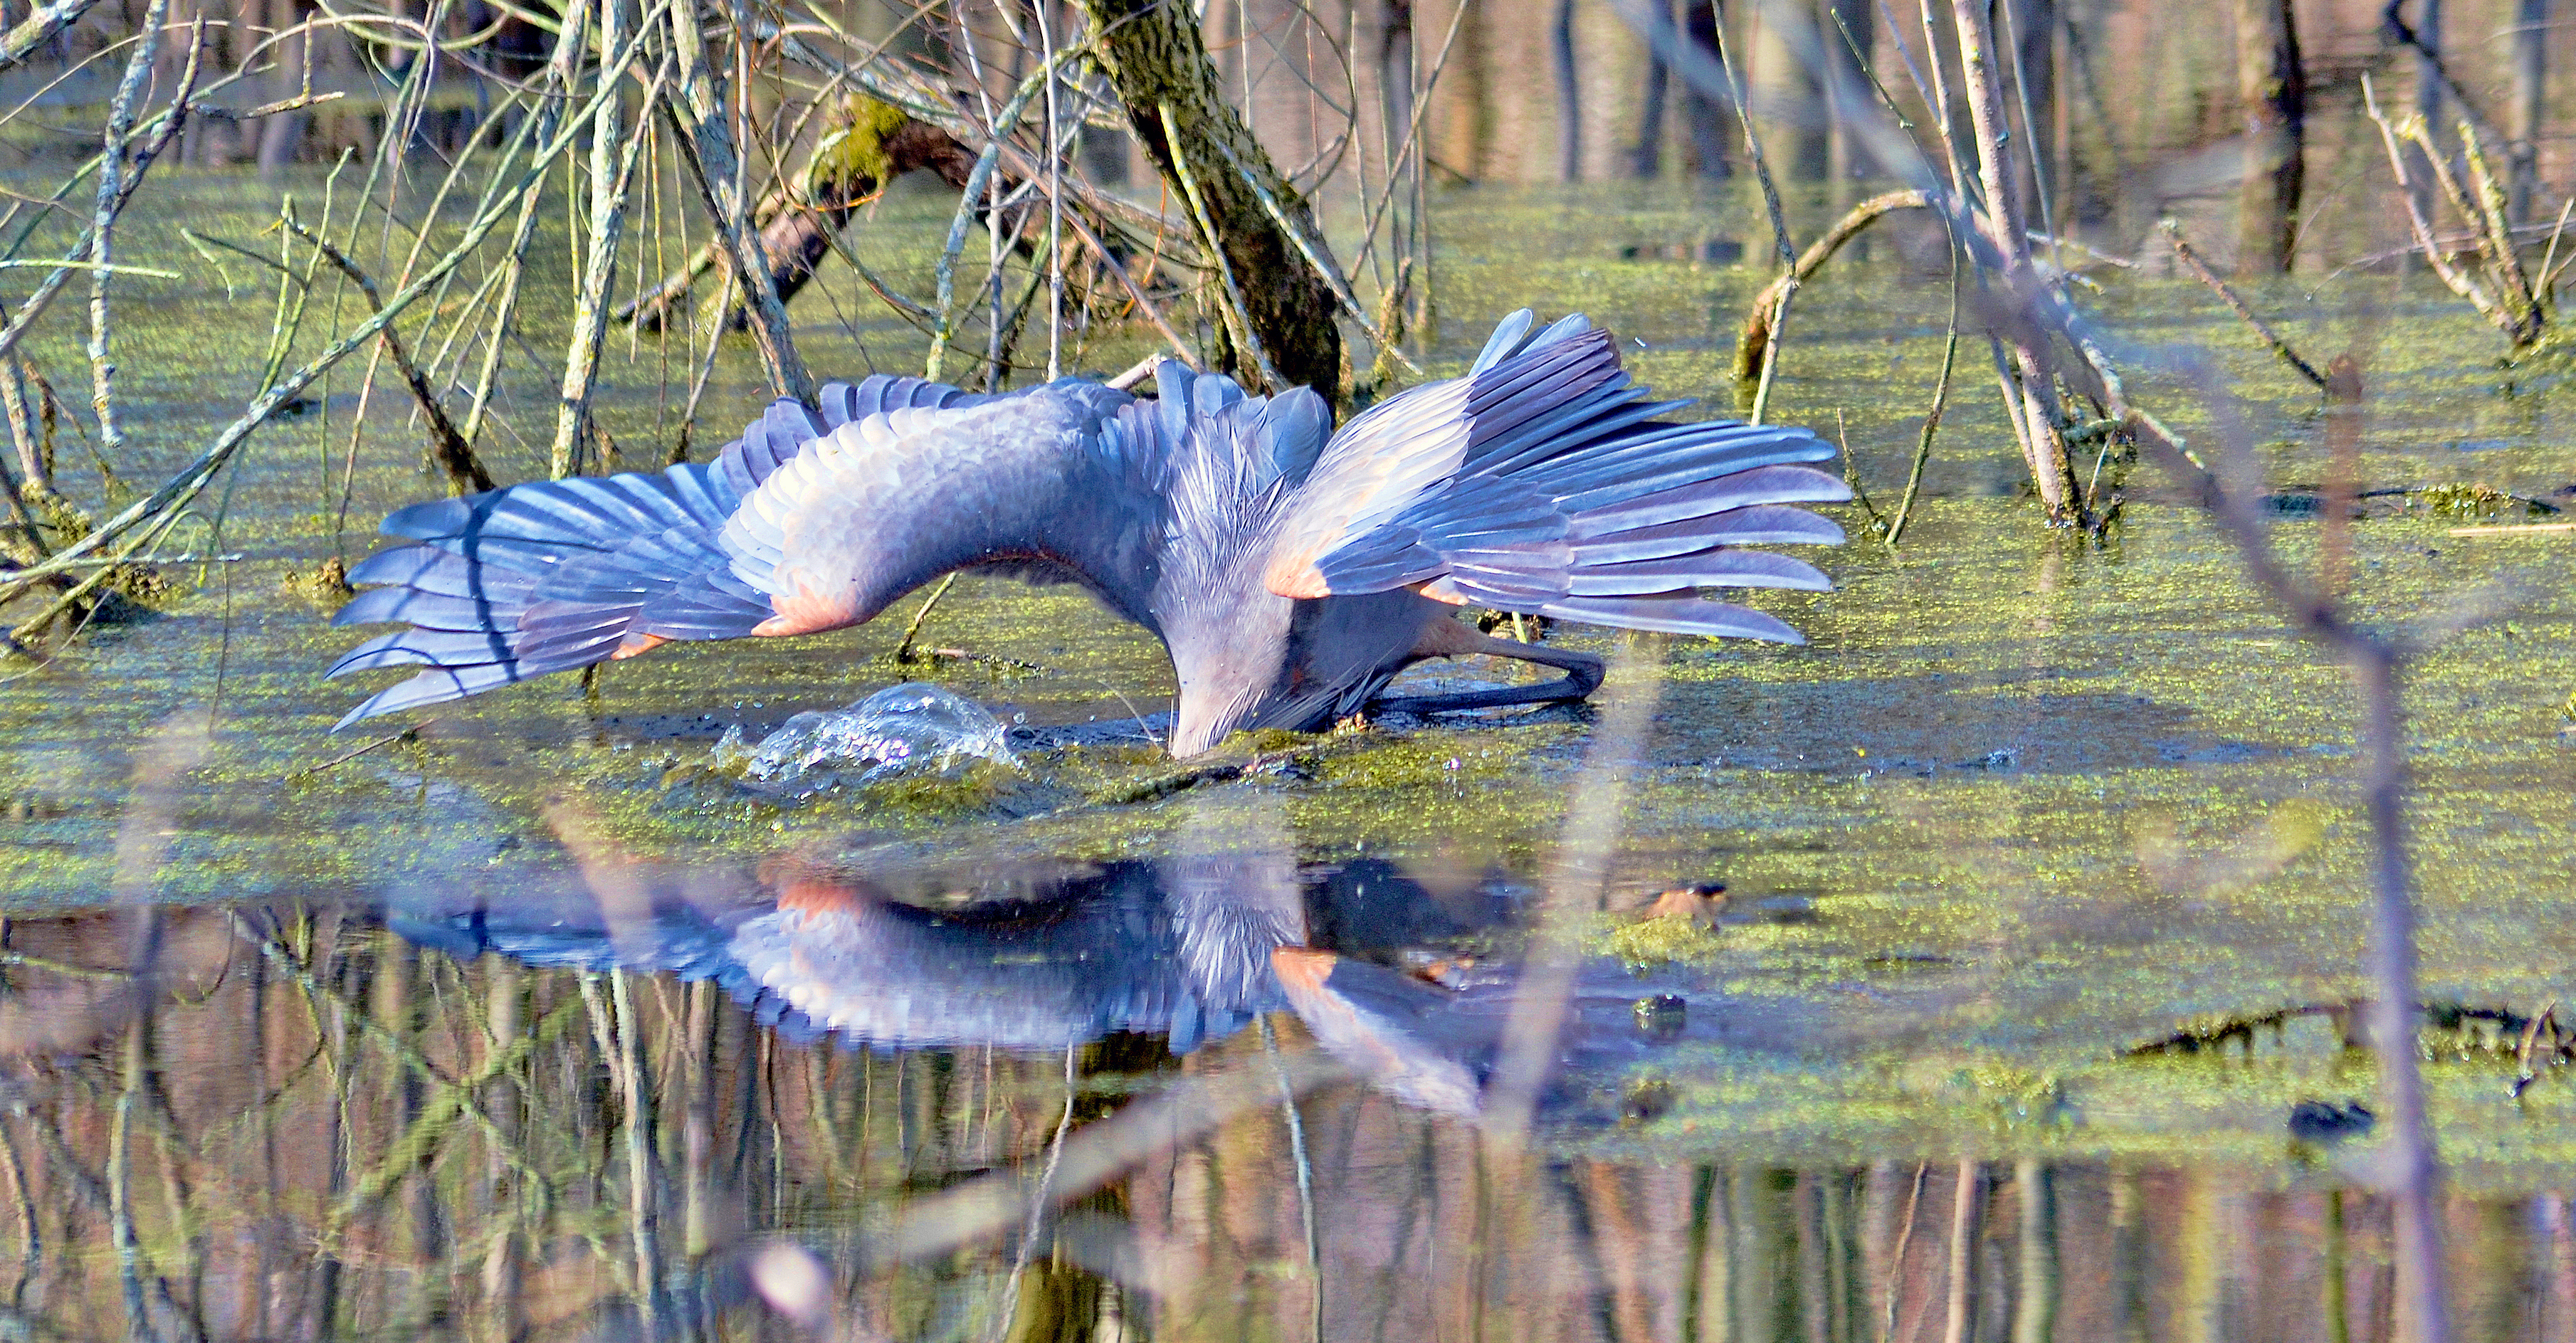 Great Blue Heron gone fishing<br />Yes, this Great Blue Heron is fishing at the Ottawa National Wildlife Refuge. The Great Blue Heron, America's largest heron, is a master at catching fish. They may also become adept at catching small muskrats and other rodents, and rails, ducklings, frogs, and other small birds. (Photo by Maggi Dandar)